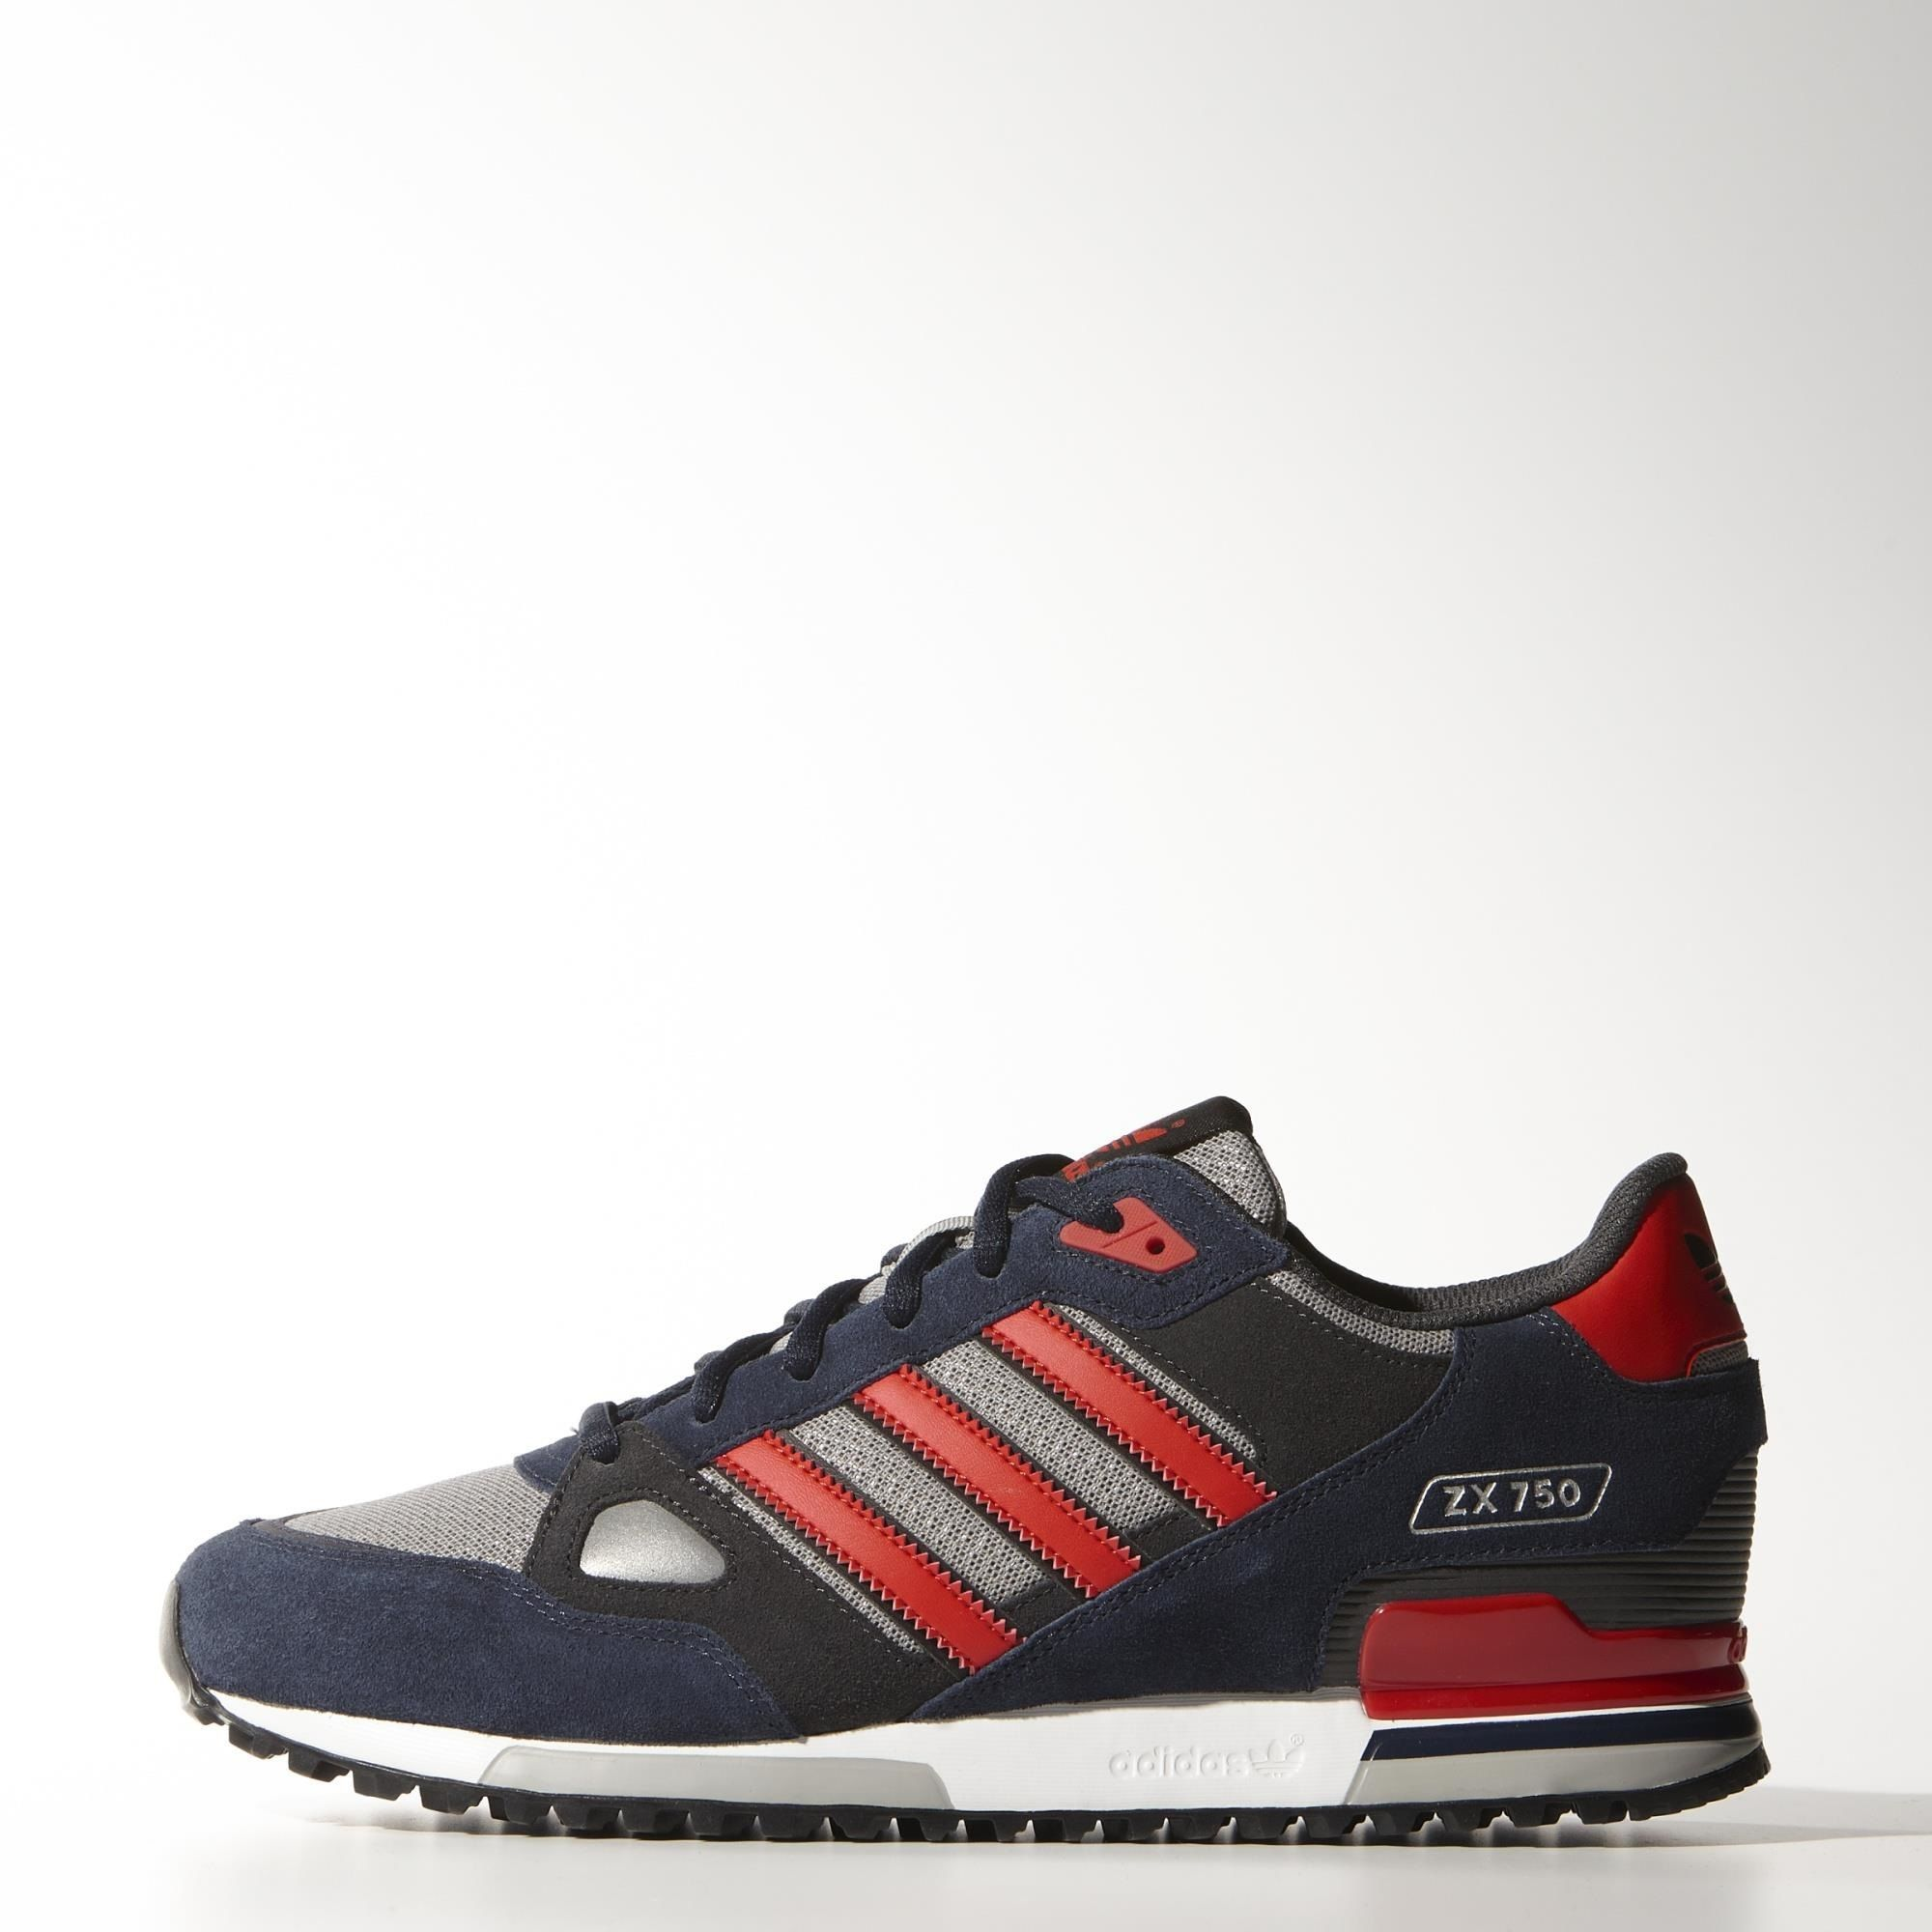 adidas - ZX 750 Shoes